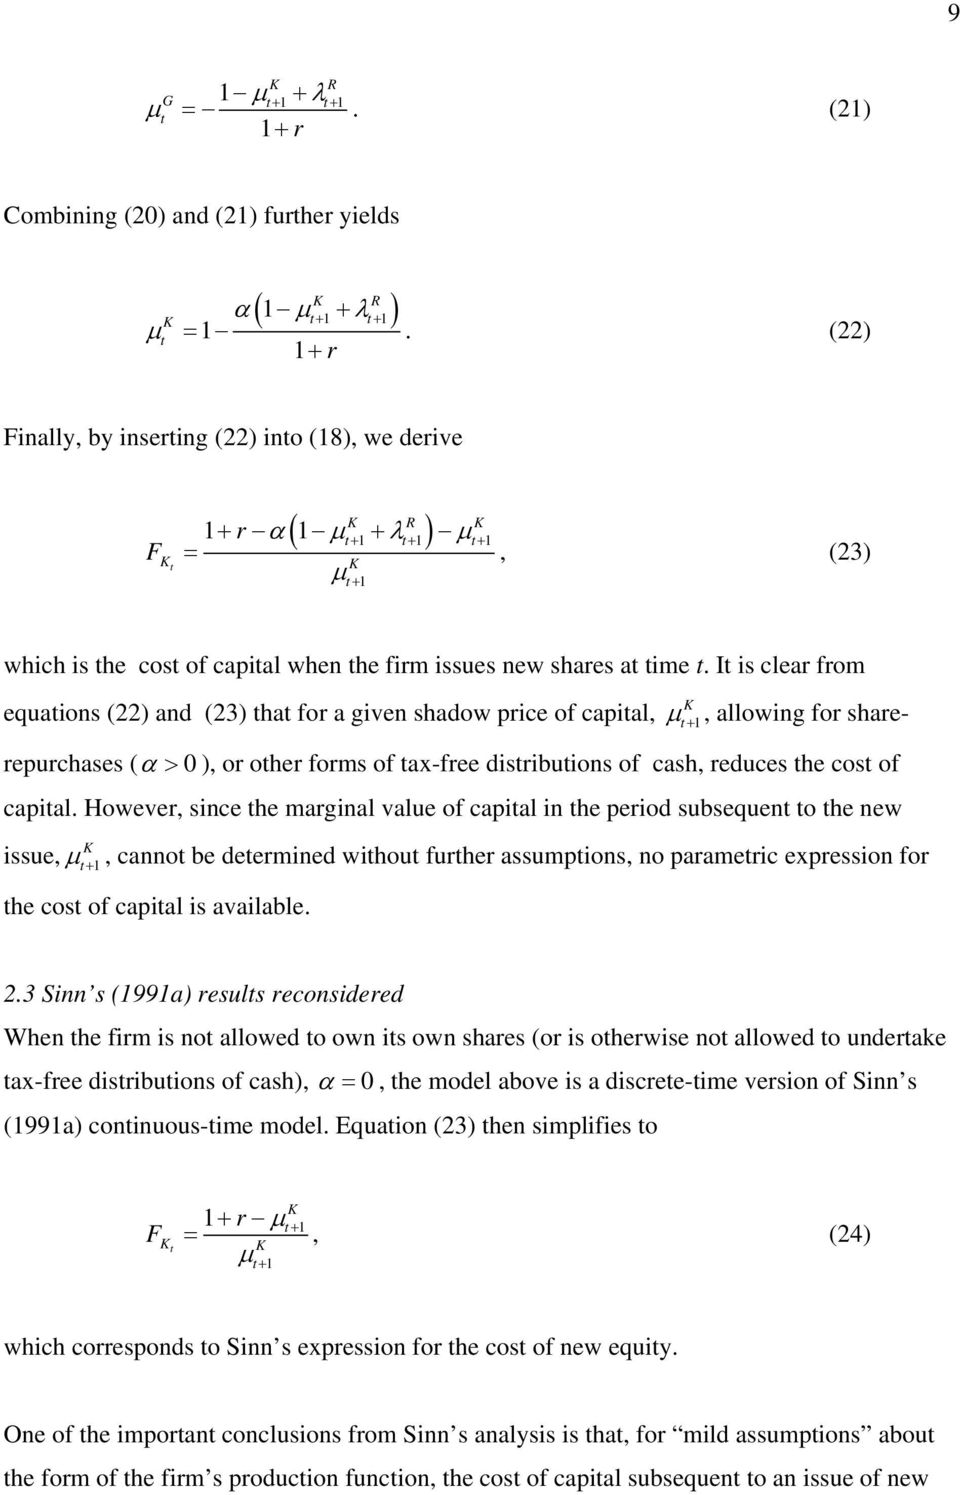 I i clear from equaion (22) and (23) ha for a given hadow price of capial, +, allowing for harerepurchae ( α > 0 ), or oher form of ax-free diribuion of cah, reduce he co of capial.